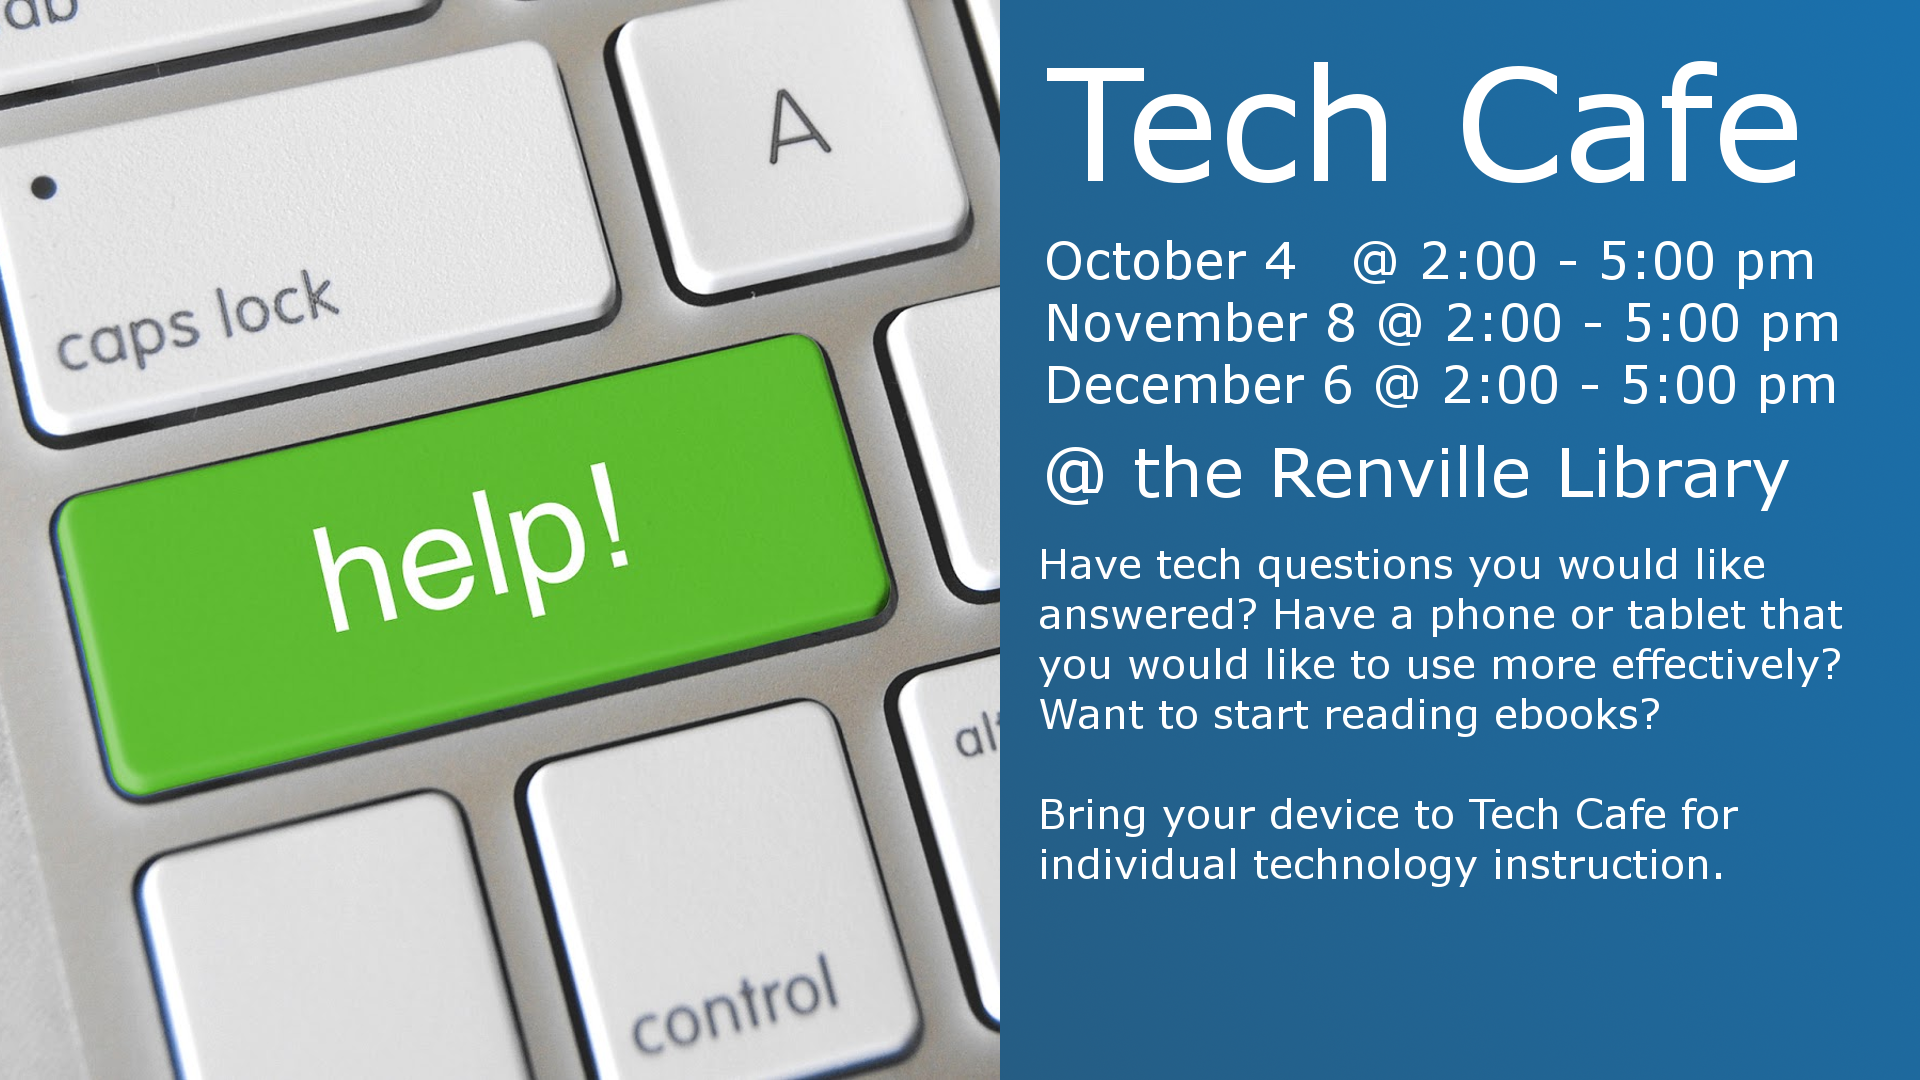 Tech Cafe  October 4 2:00 - 5:00 pm November 8 2:00 - 5:00 pm December 6 2:00 - 5:00 pm  @ the Renville Library  Have tech questions you would like answered? Have a phone or tablet you would like to use more effectively? Want to start reading ebooks?  Bring your device to Tech Cafe for individual technology instruction.